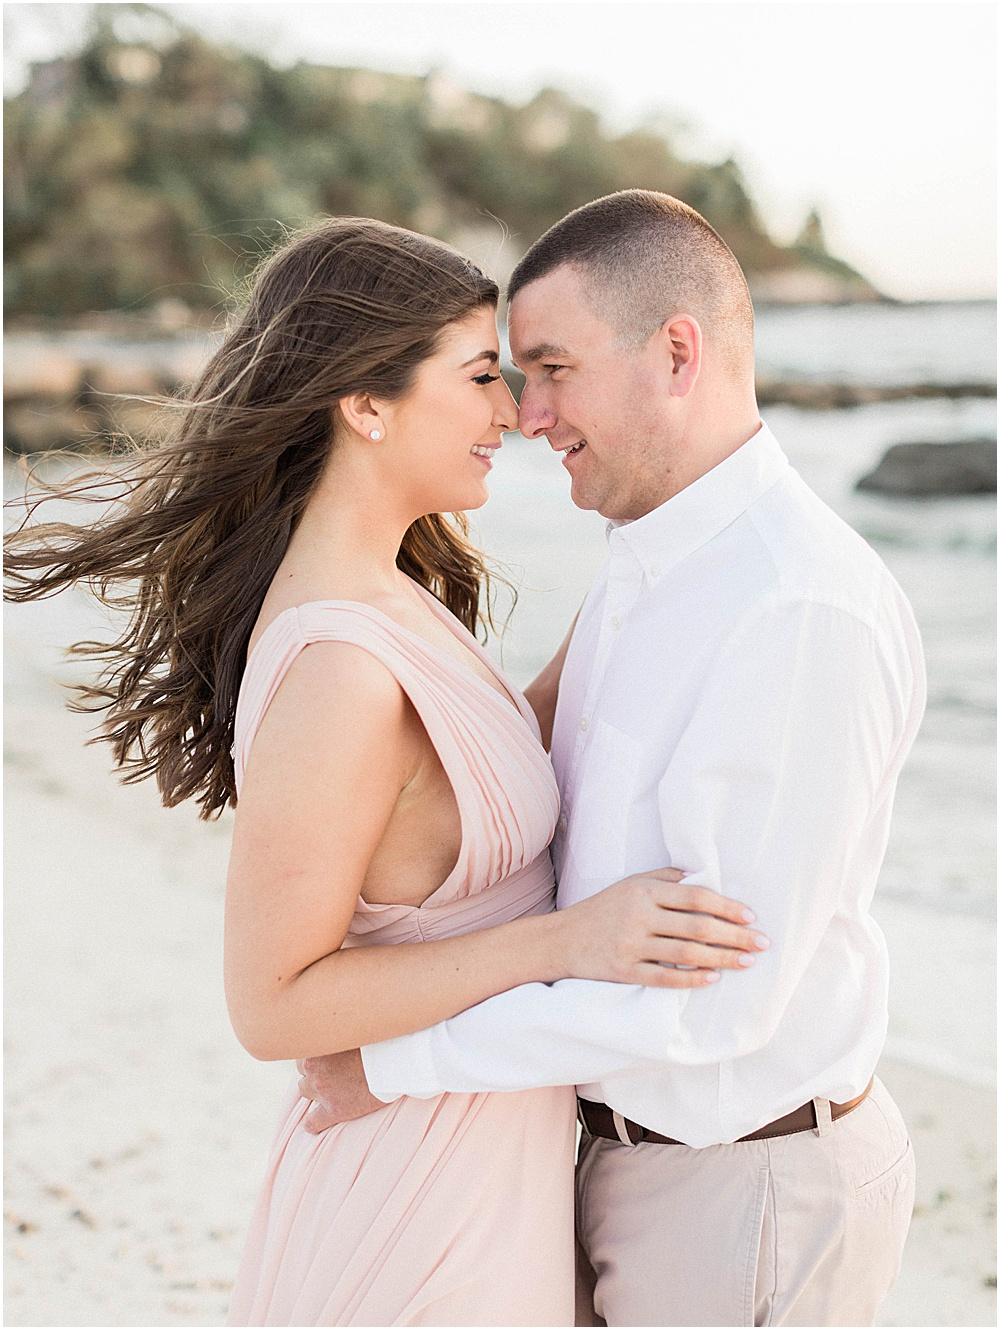 chartroom_old_silver_beach_seacrest_sunset_spring_engagement_session_boston_wedding_photographer_meredith_jane_photography_photo_0246.jpg